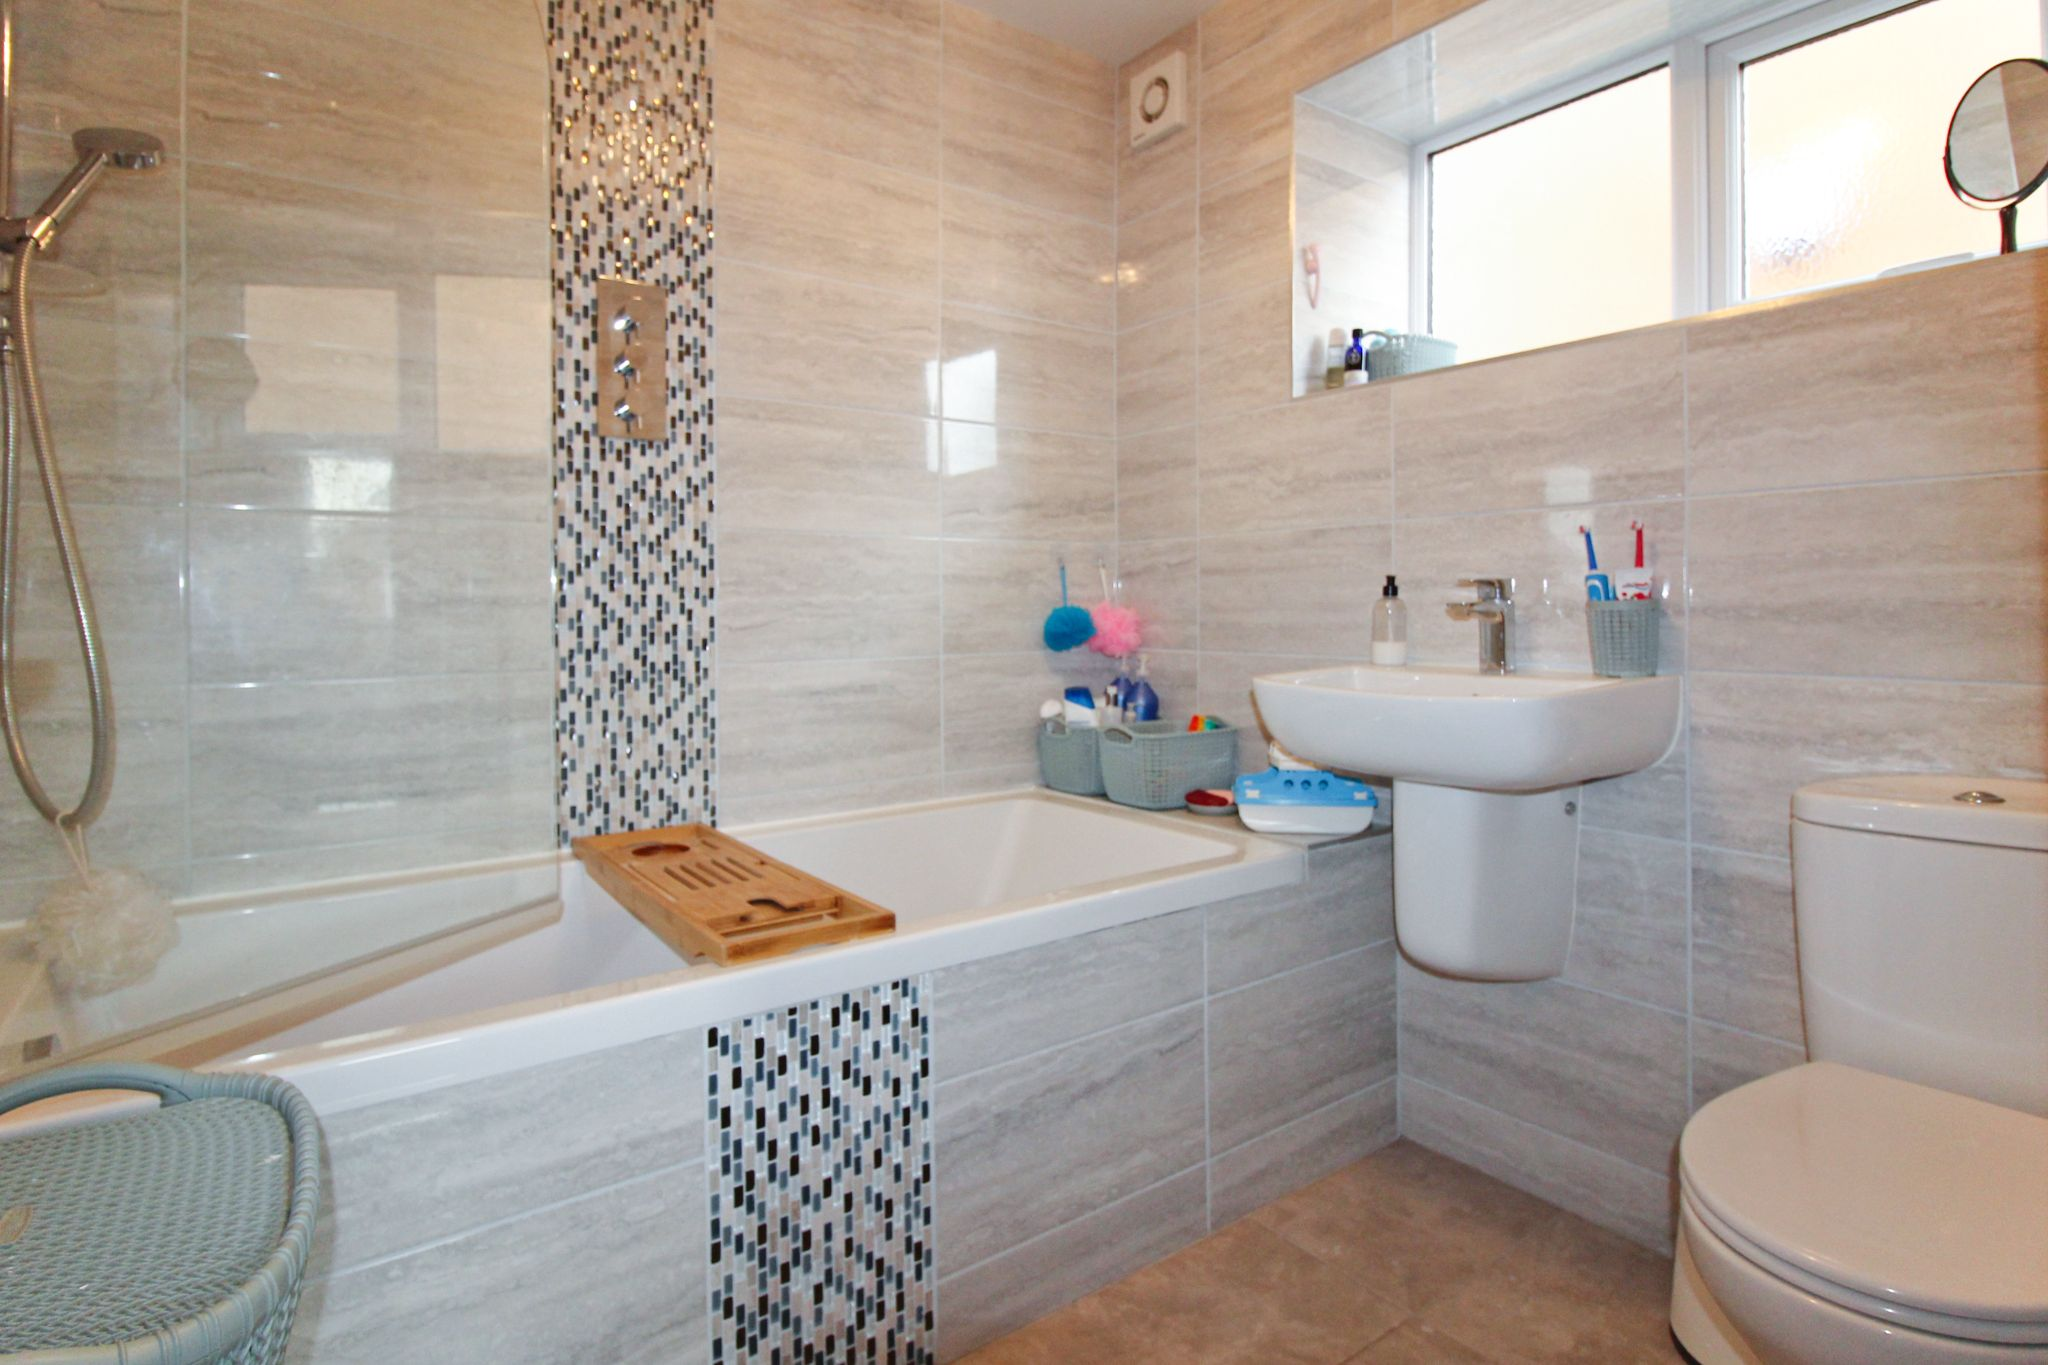 4 bedroom detached house For Sale in Solihull - Photograph 15.